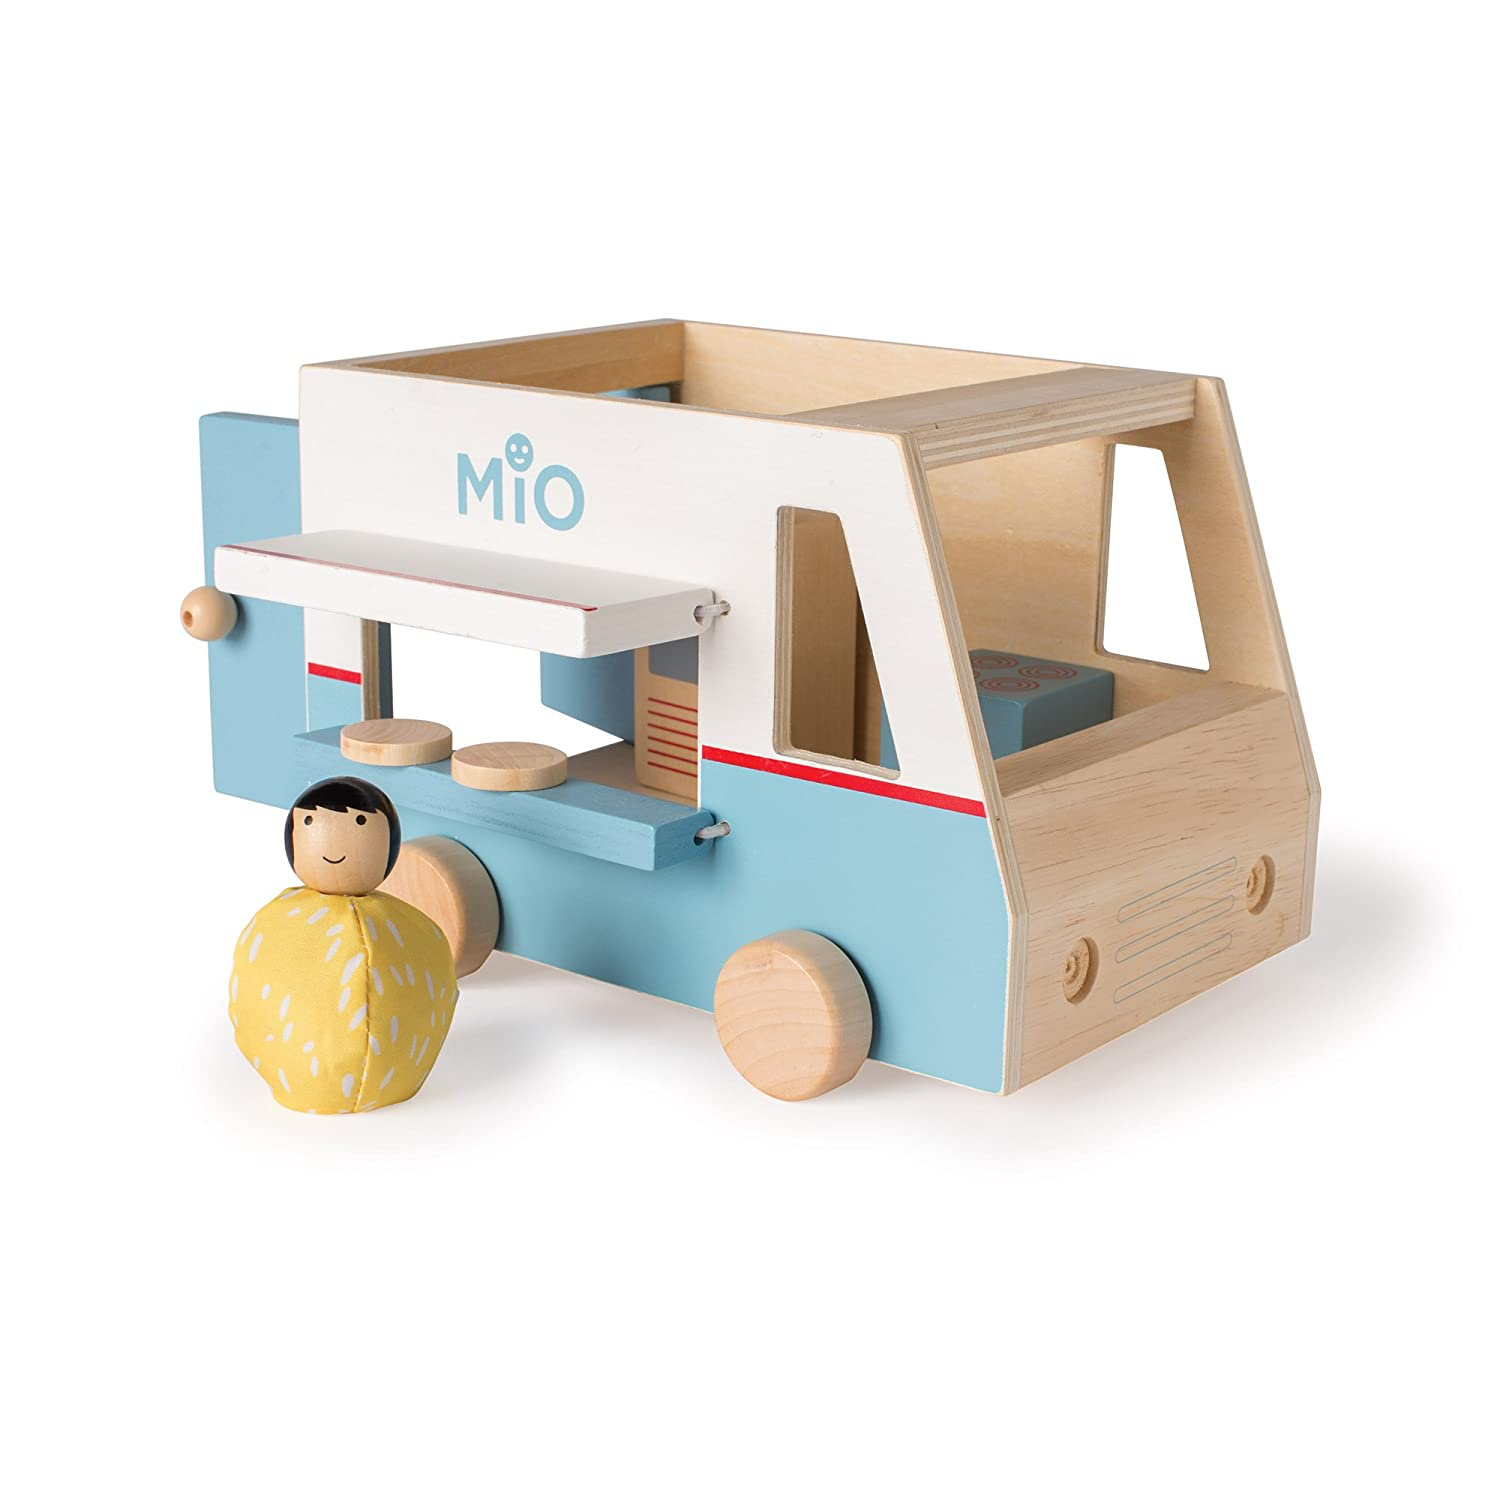 Manhattan Toy MiO Wooden Toy Airplane + 1 Bean Bag Person Peg Pilot Doll - 2 Piece Imaginative Play Kit by